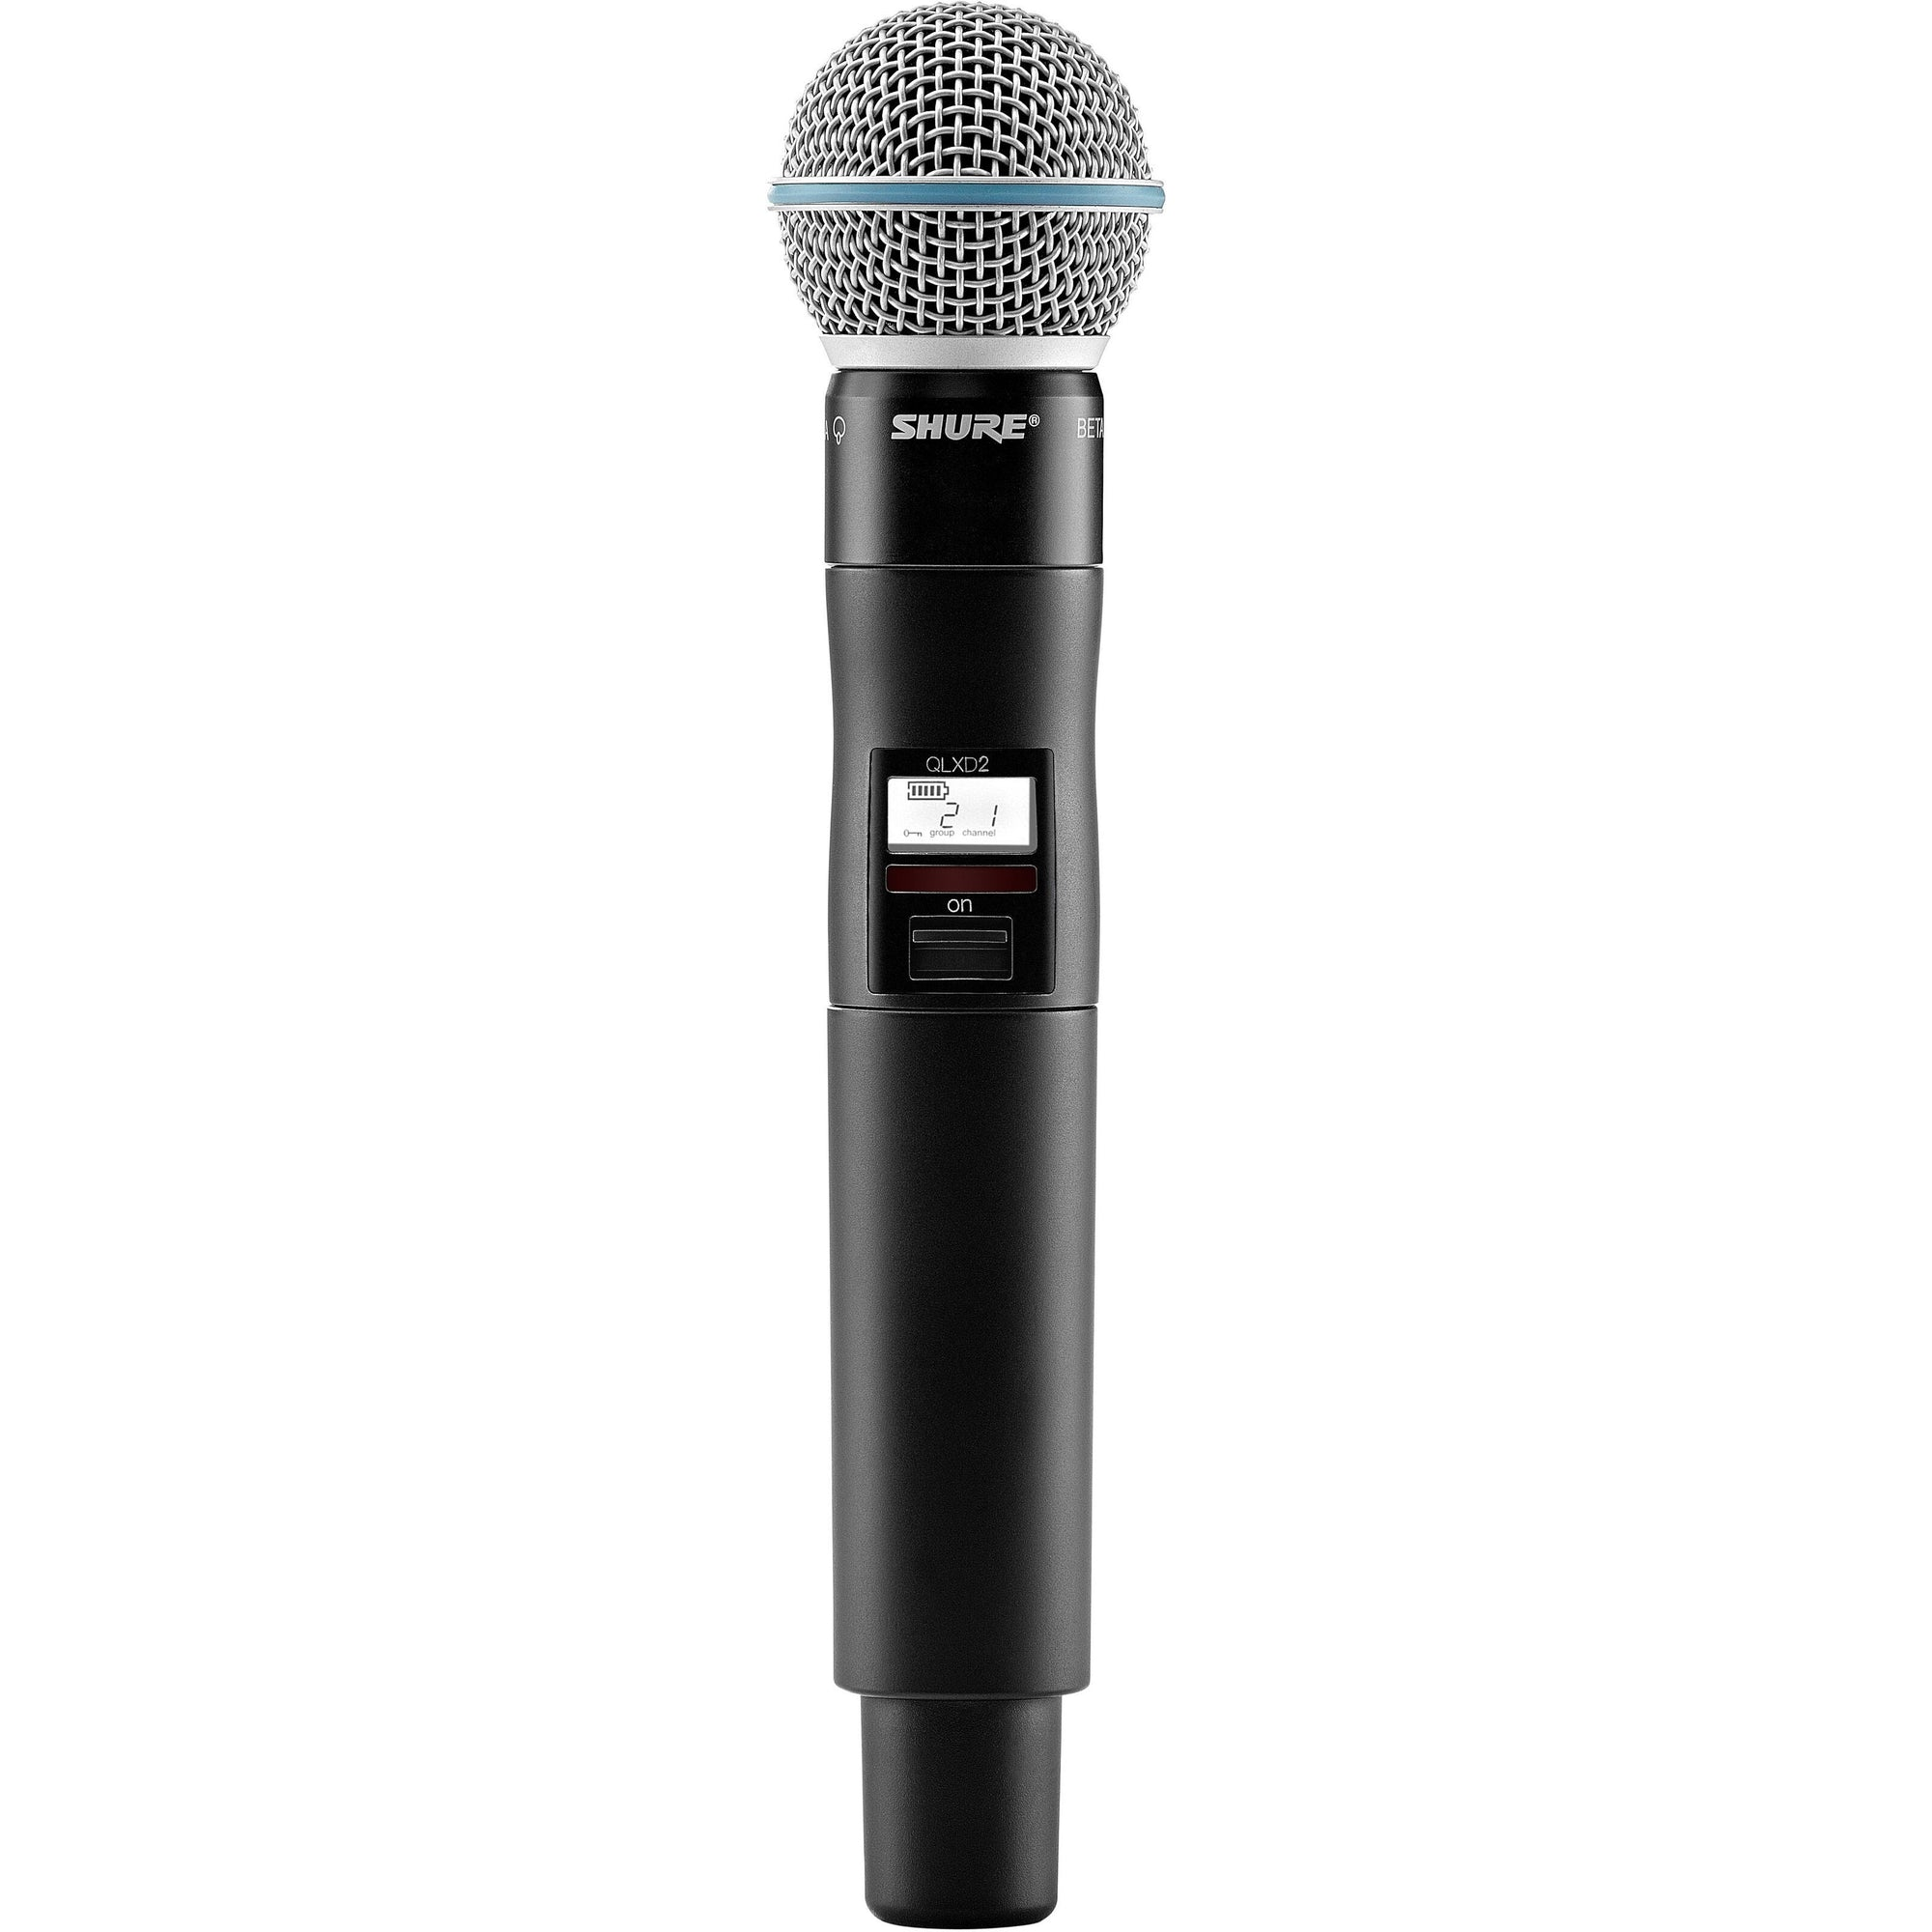 Shure QLXD24B58 Wireless System with Beta 58A Handheld Microphone Transmitter, Band G50 (470 - 534 MHz)